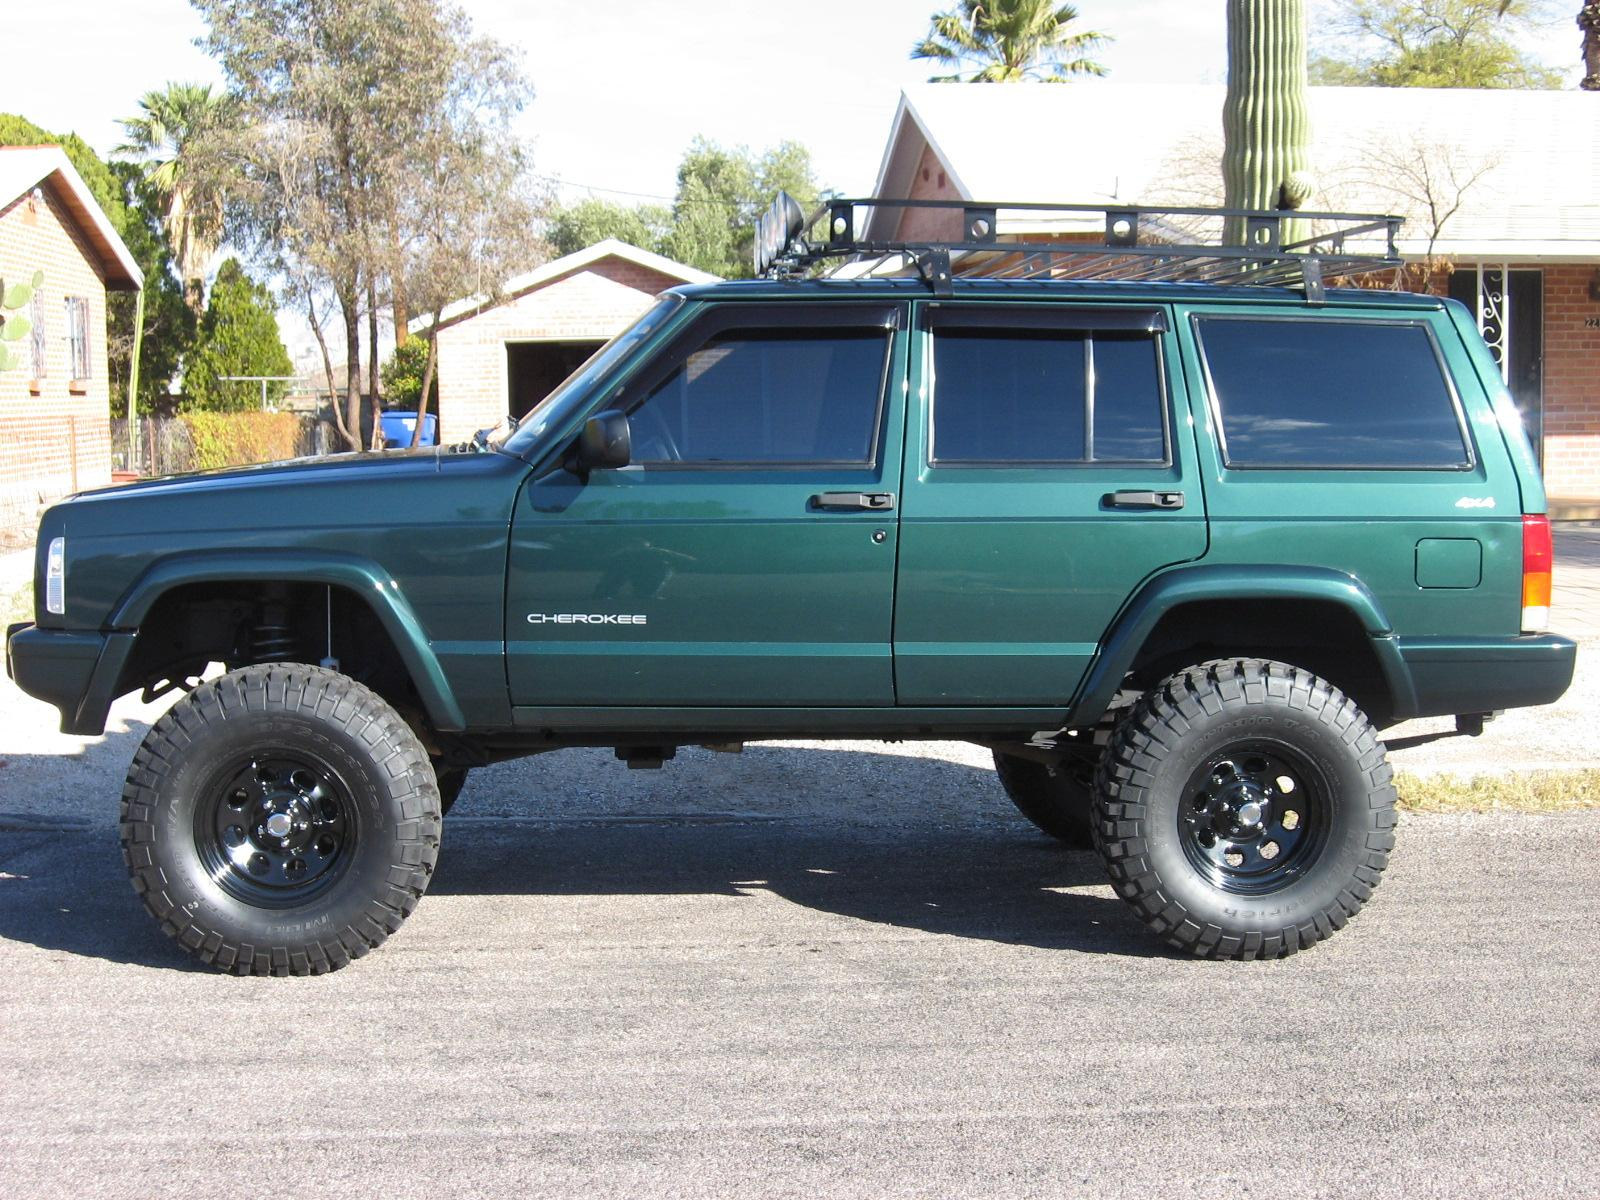 1999 Jeep Cherokee Information And Photos Momentcar Forum 6